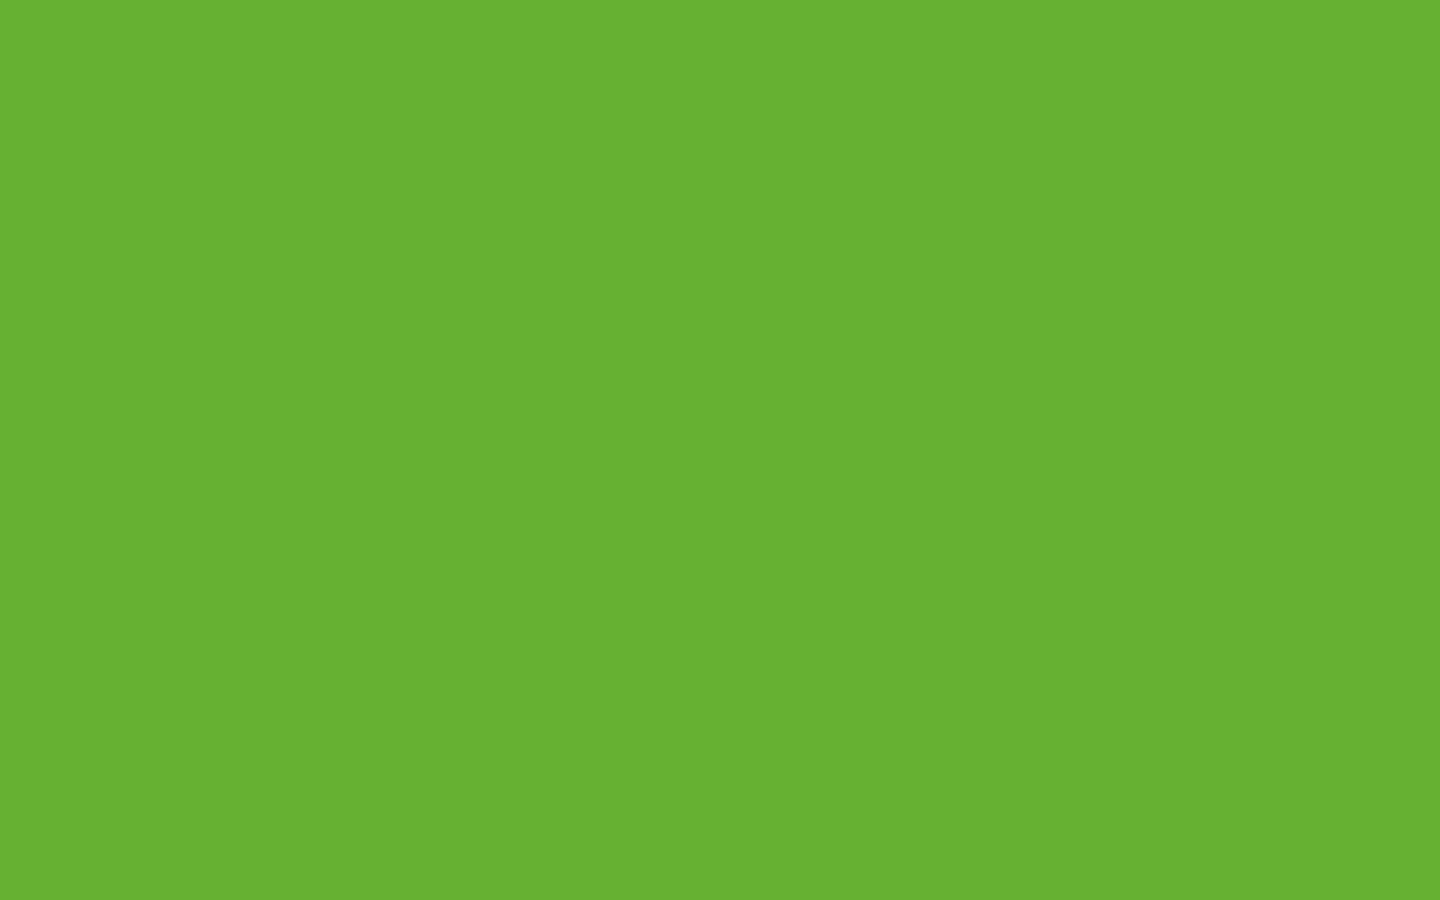 1440x900 Green RYB Solid Color Background